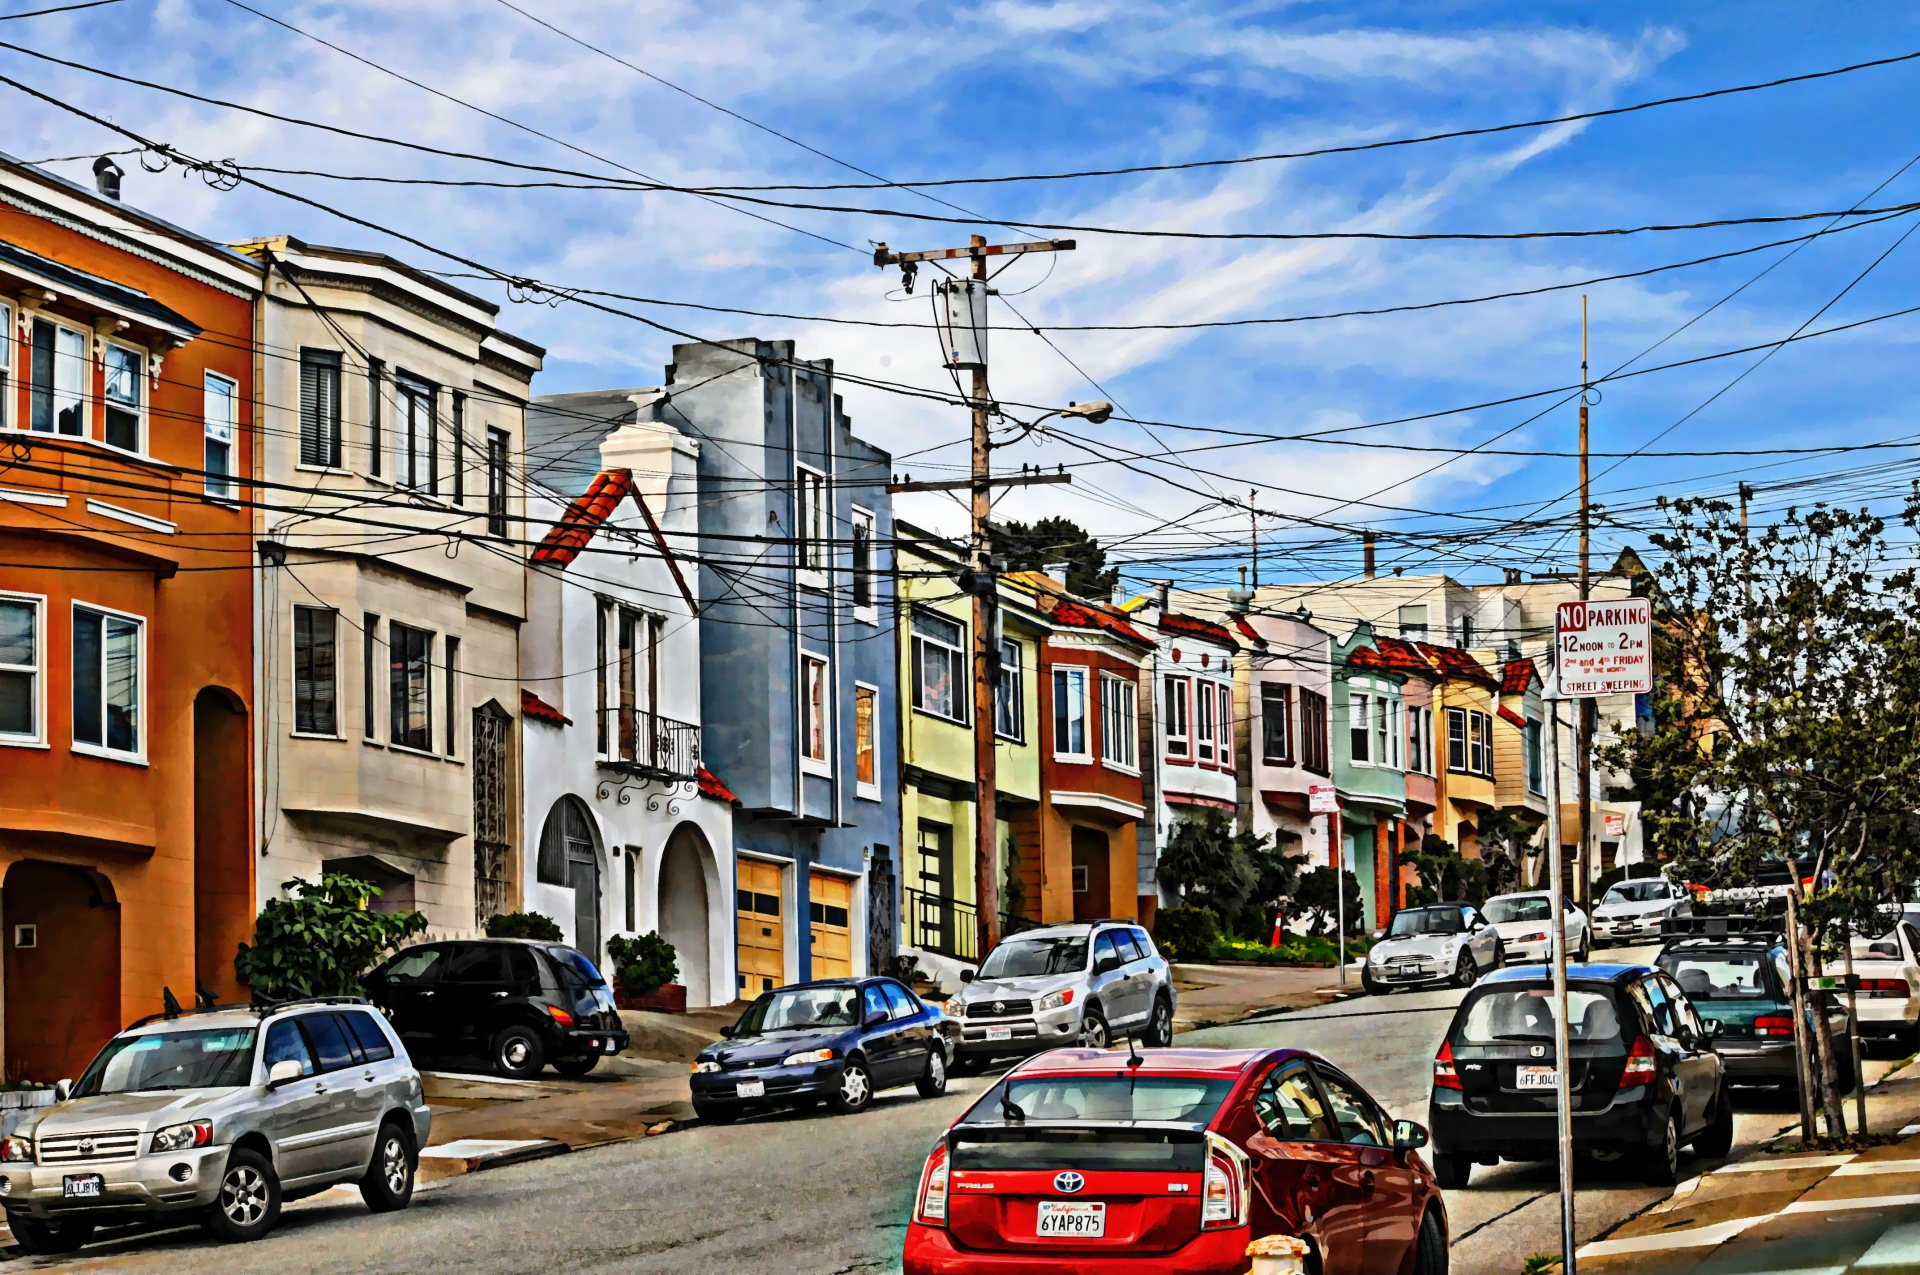 san-francisco-neighborhood-1459695606m8F.jpg